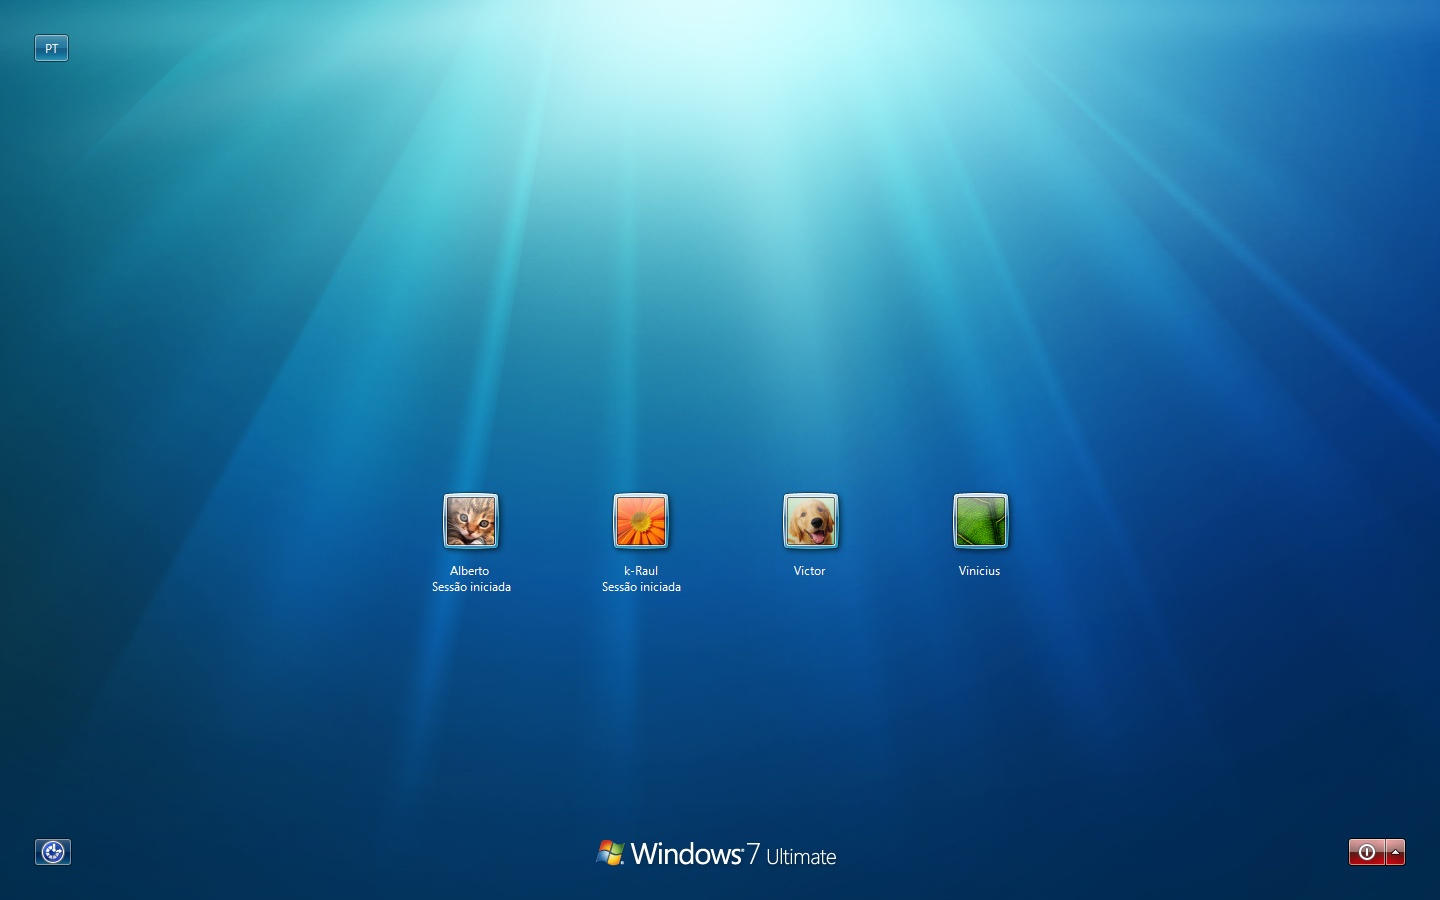 Windows 7 Default Login 4.0.1 by RaulWindows